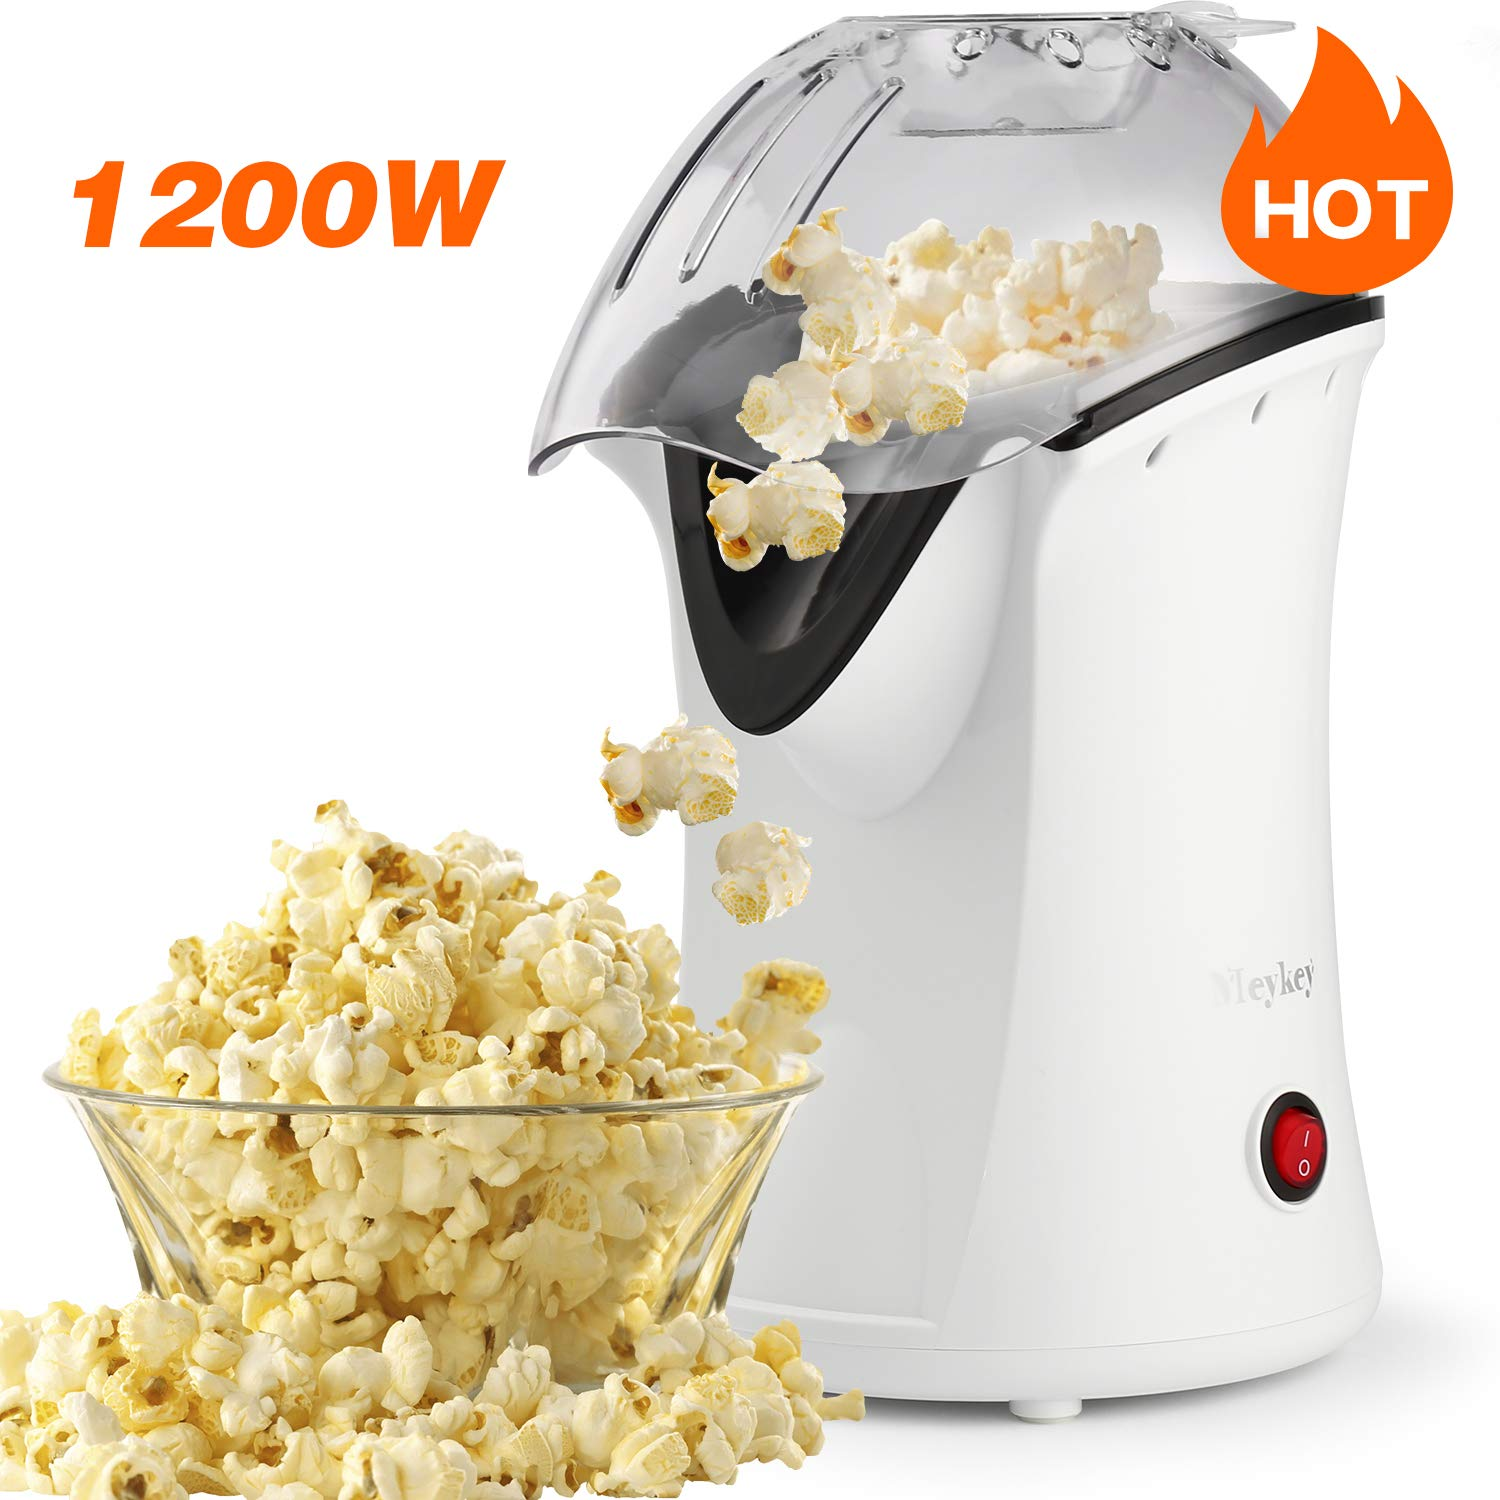 Popcorn Popper Oveloxe Hot Air Popcorn Popper 1200W No Oil Popcorn Maker with Measuring Cup and Removable Top Cover by Oveloxe